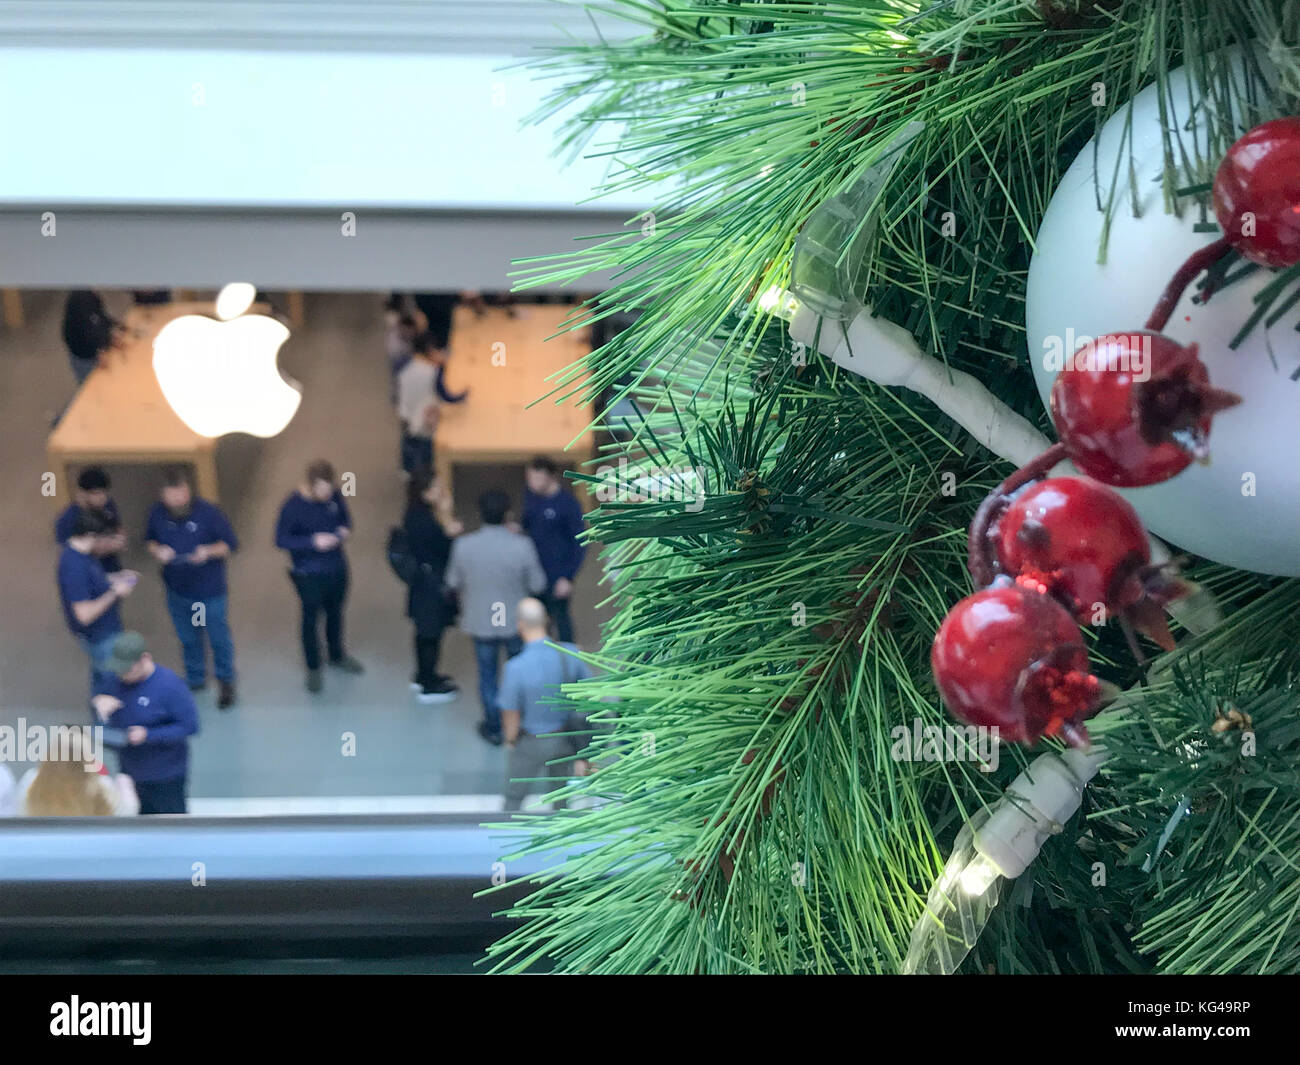 Pennsylvania, USA. 3rd Nov, 2017. Apple customers wait in line to pick up their pre-ordered Apple iPhone X/iPhoneX - Stock Image